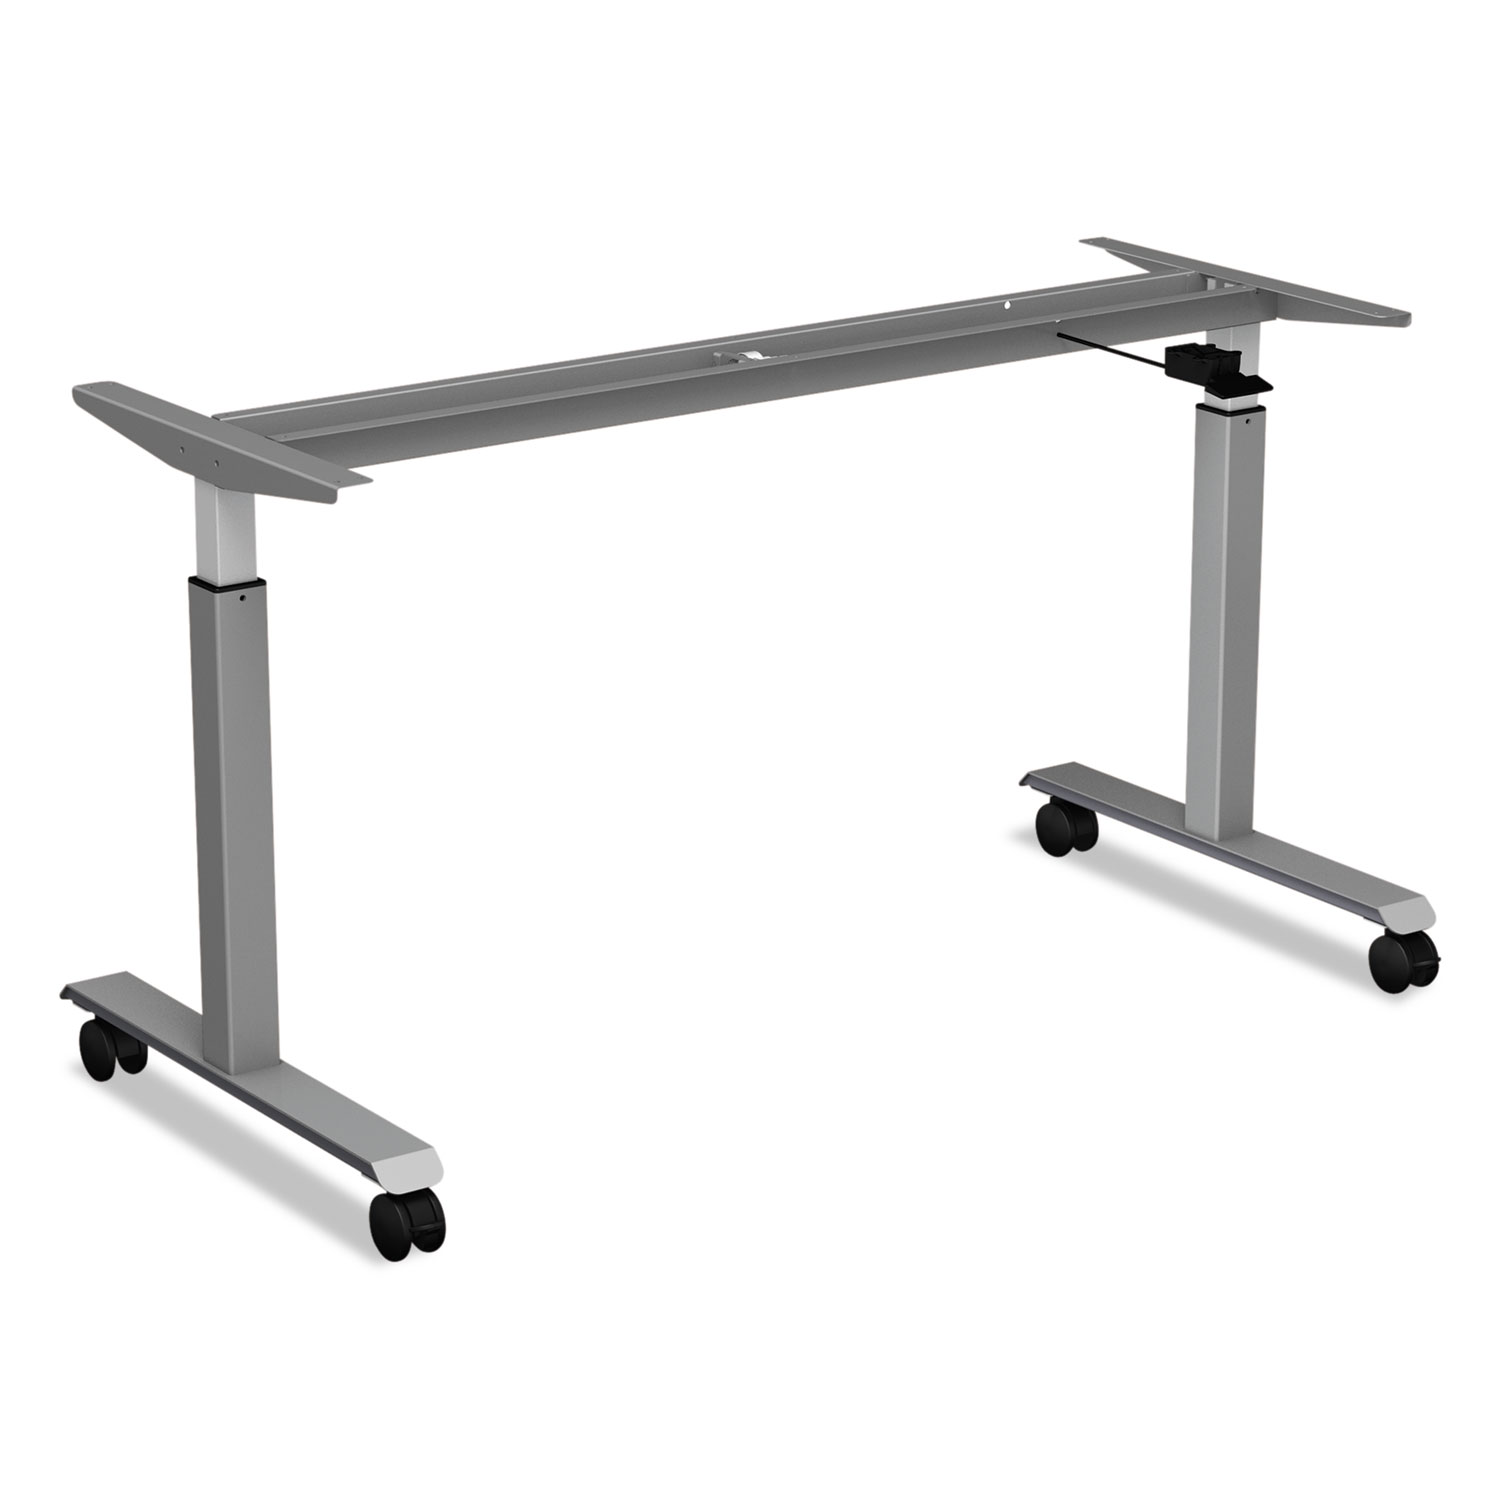 Casters for Height Adjustable Table Bases by Alera ALEHT3004